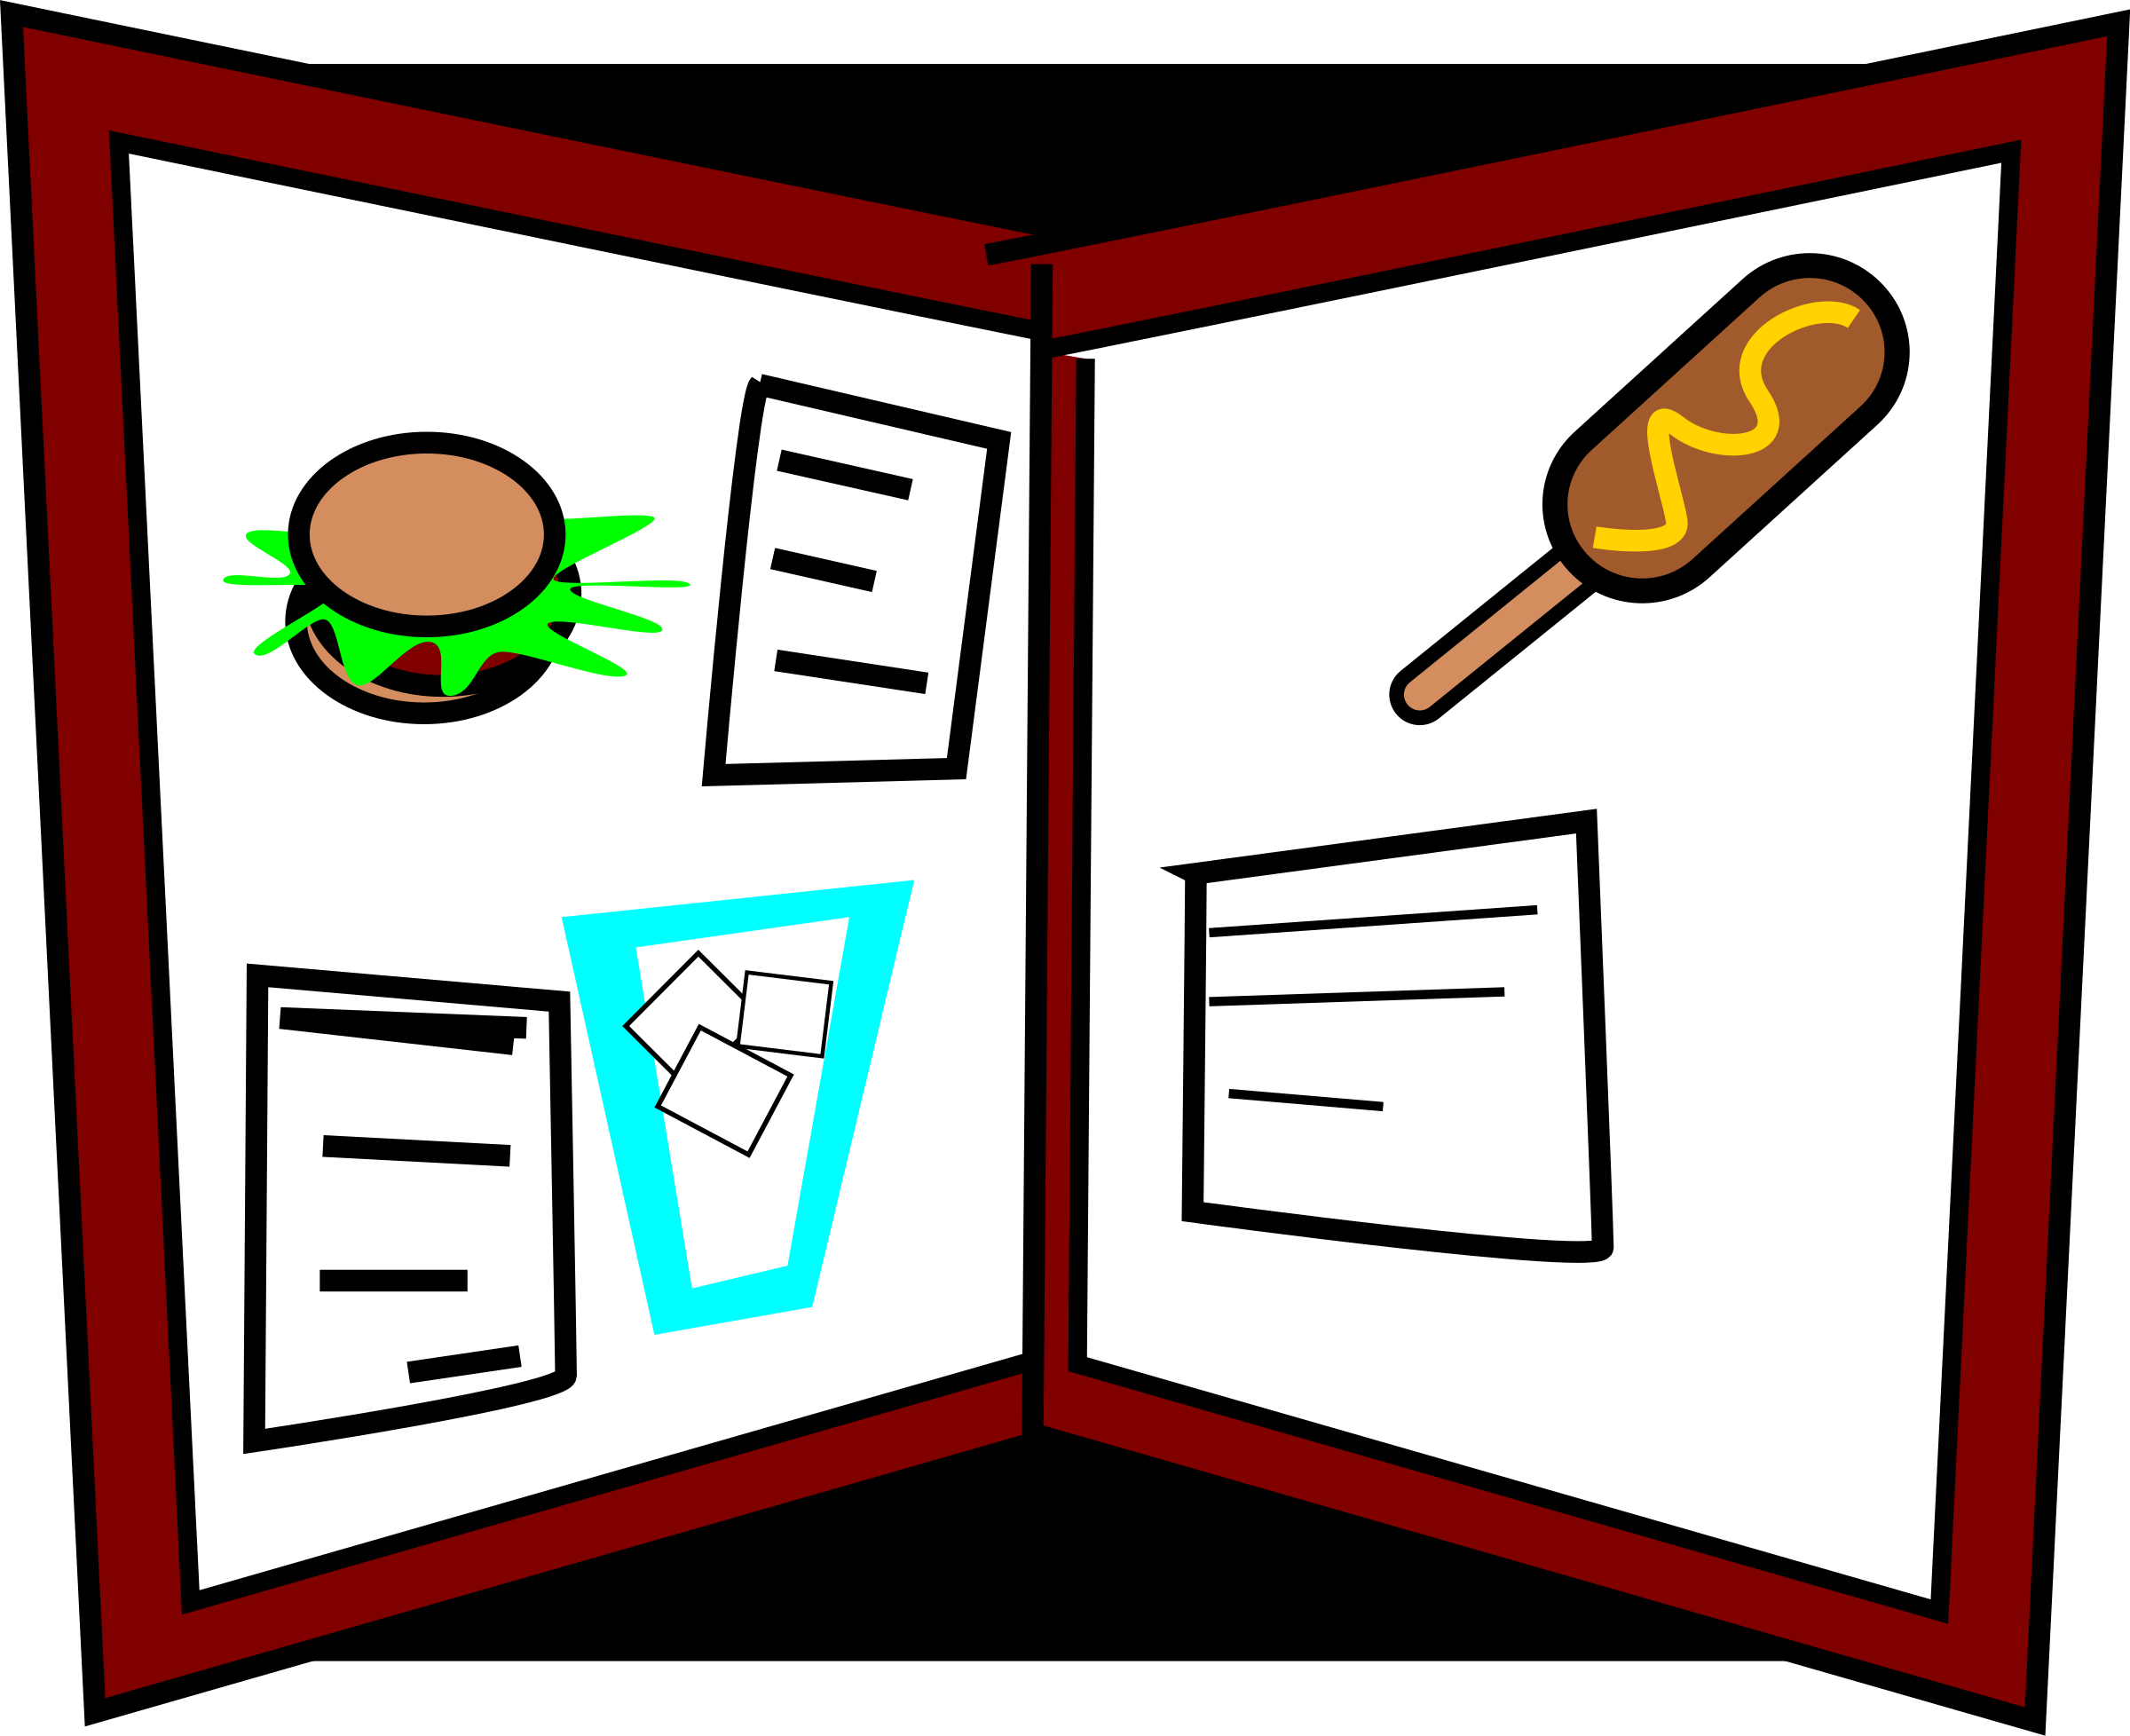 Menu clipart #6, Download drawings